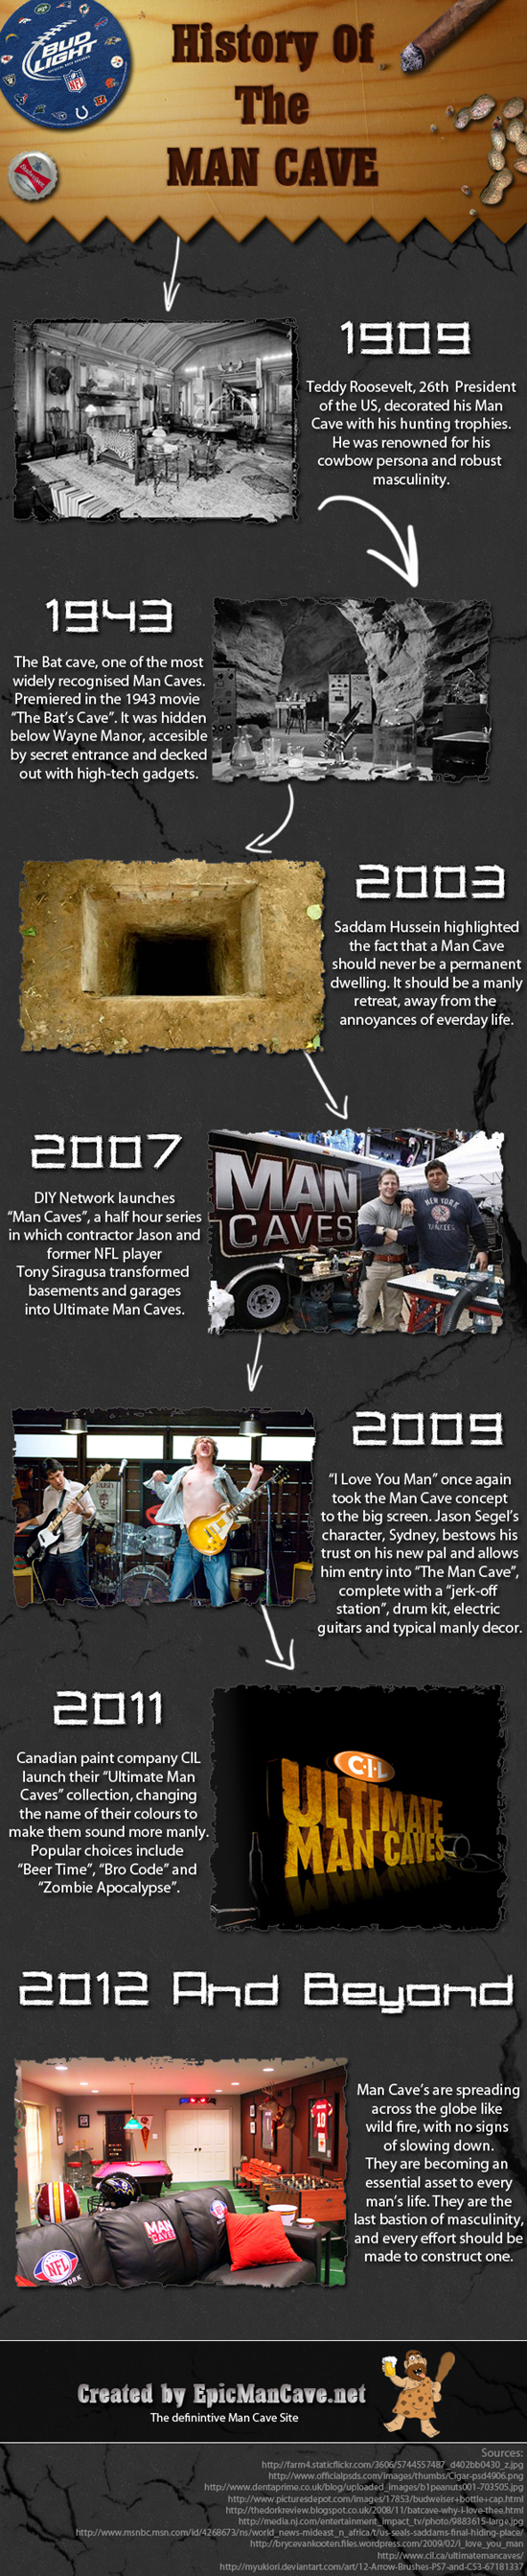 Man Caves Infographic